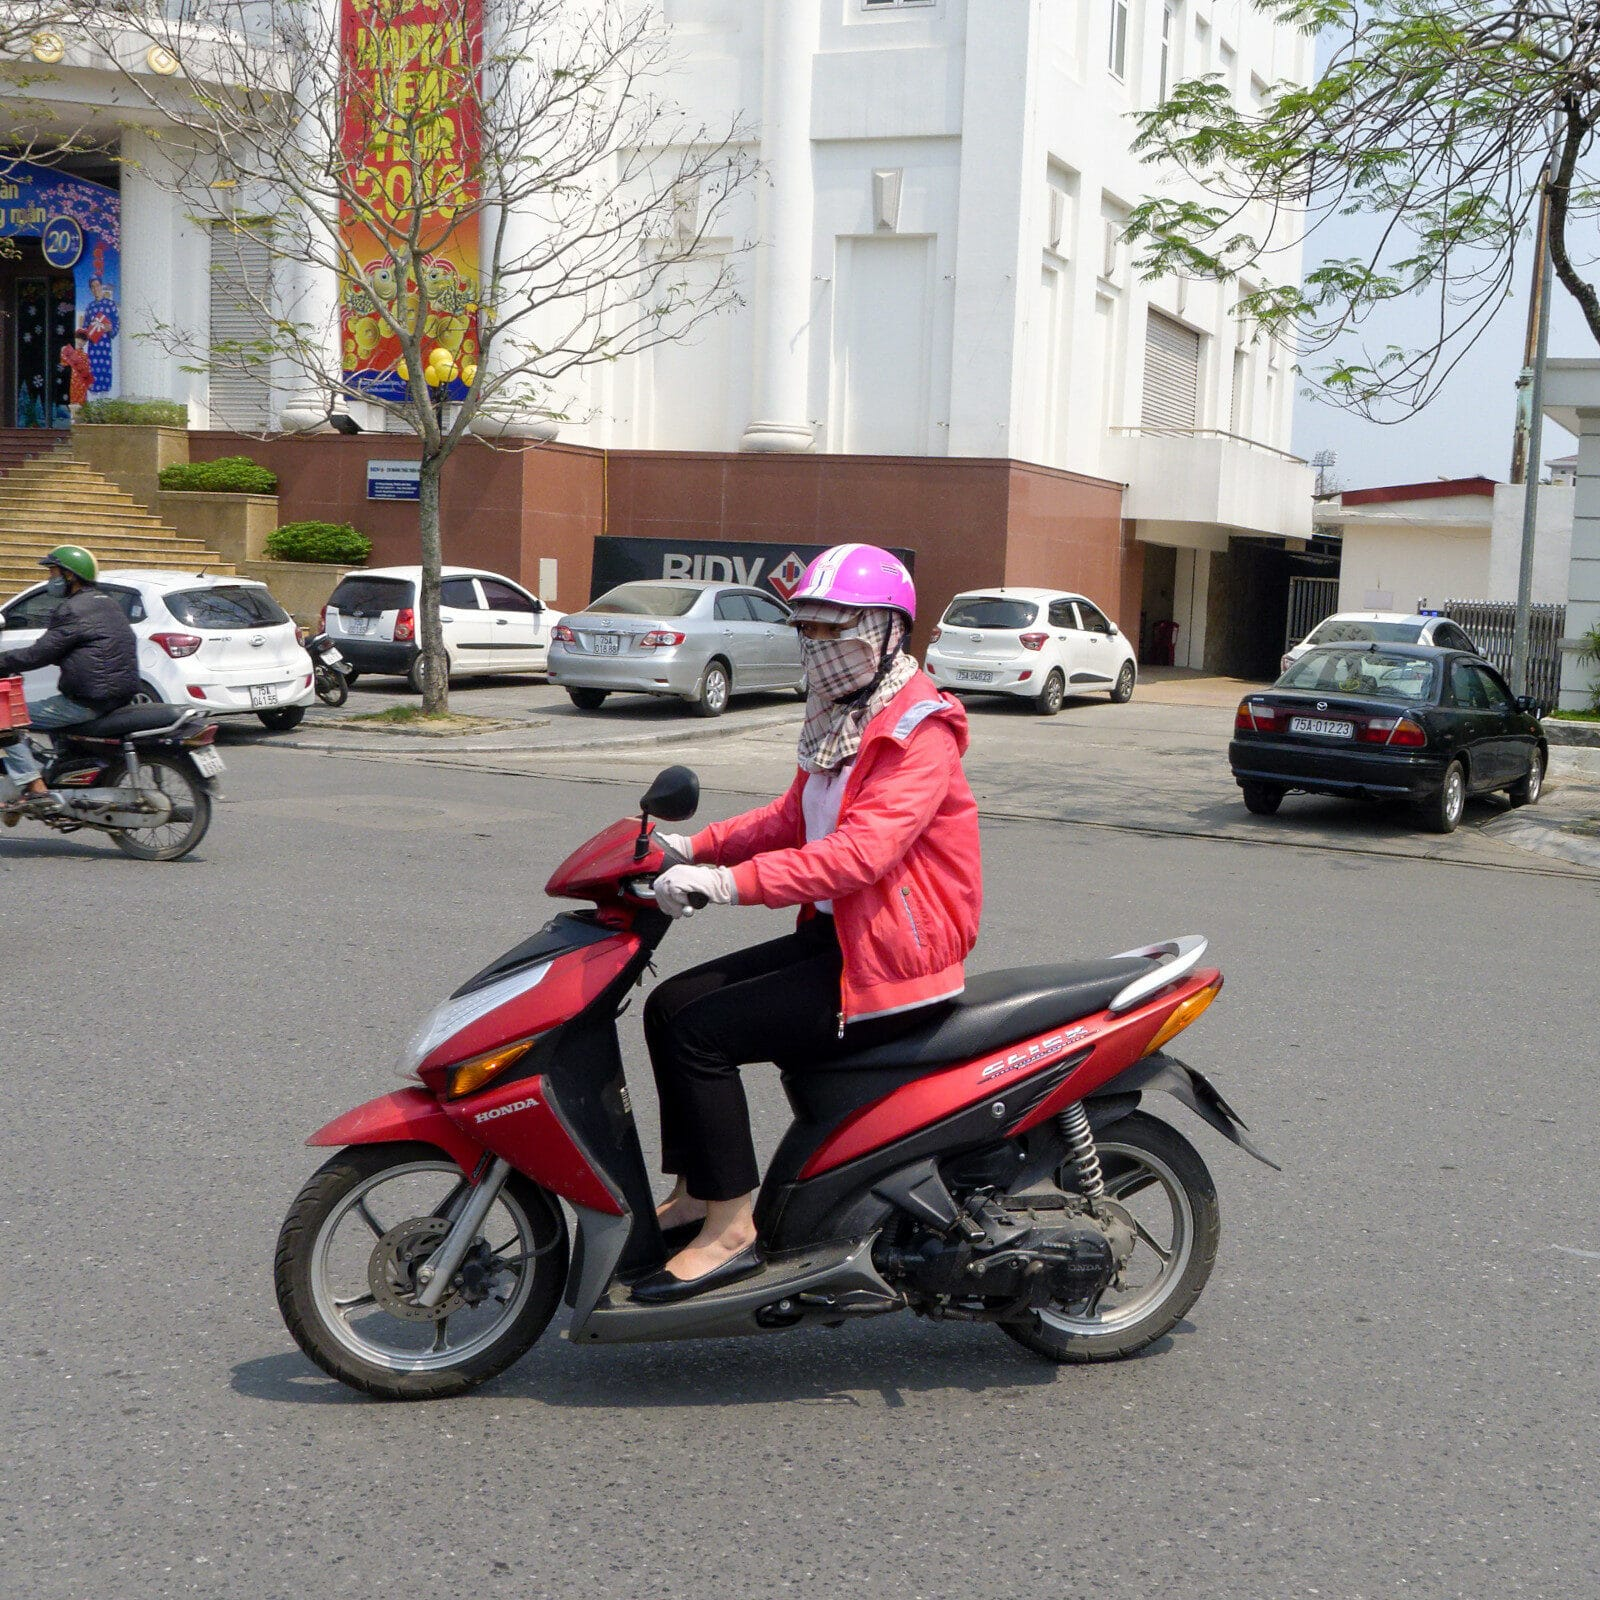 Image of a woman wearing pink on a pink motorbike in Vietnam